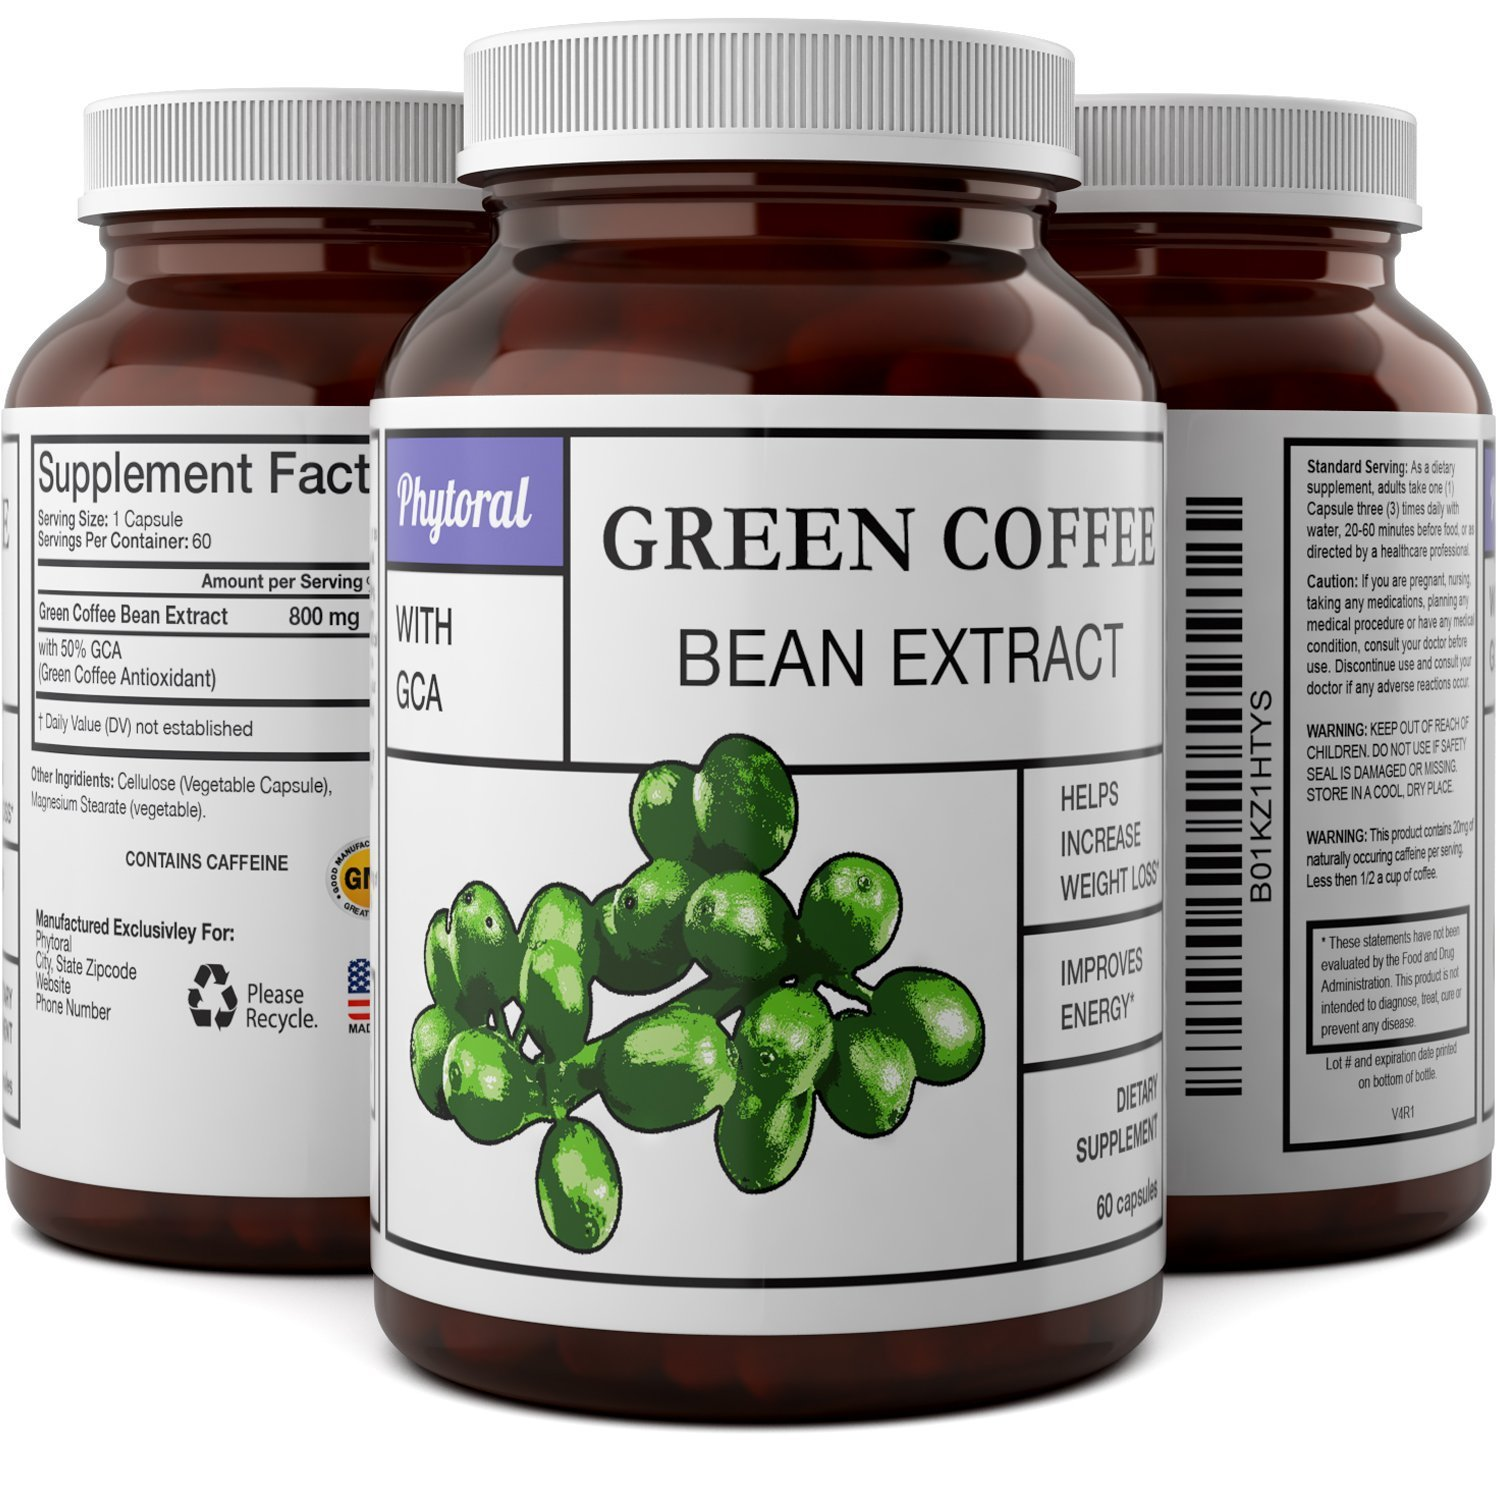 Pure Green Coffee Bean Extract Weight Loss Pills - Natural Fat Burner Pills for Men & Women Chlorogenic Acid Metabolism Booster Appetite Suppressant Capsules Potent Energy Boost Supplement - Phytoral